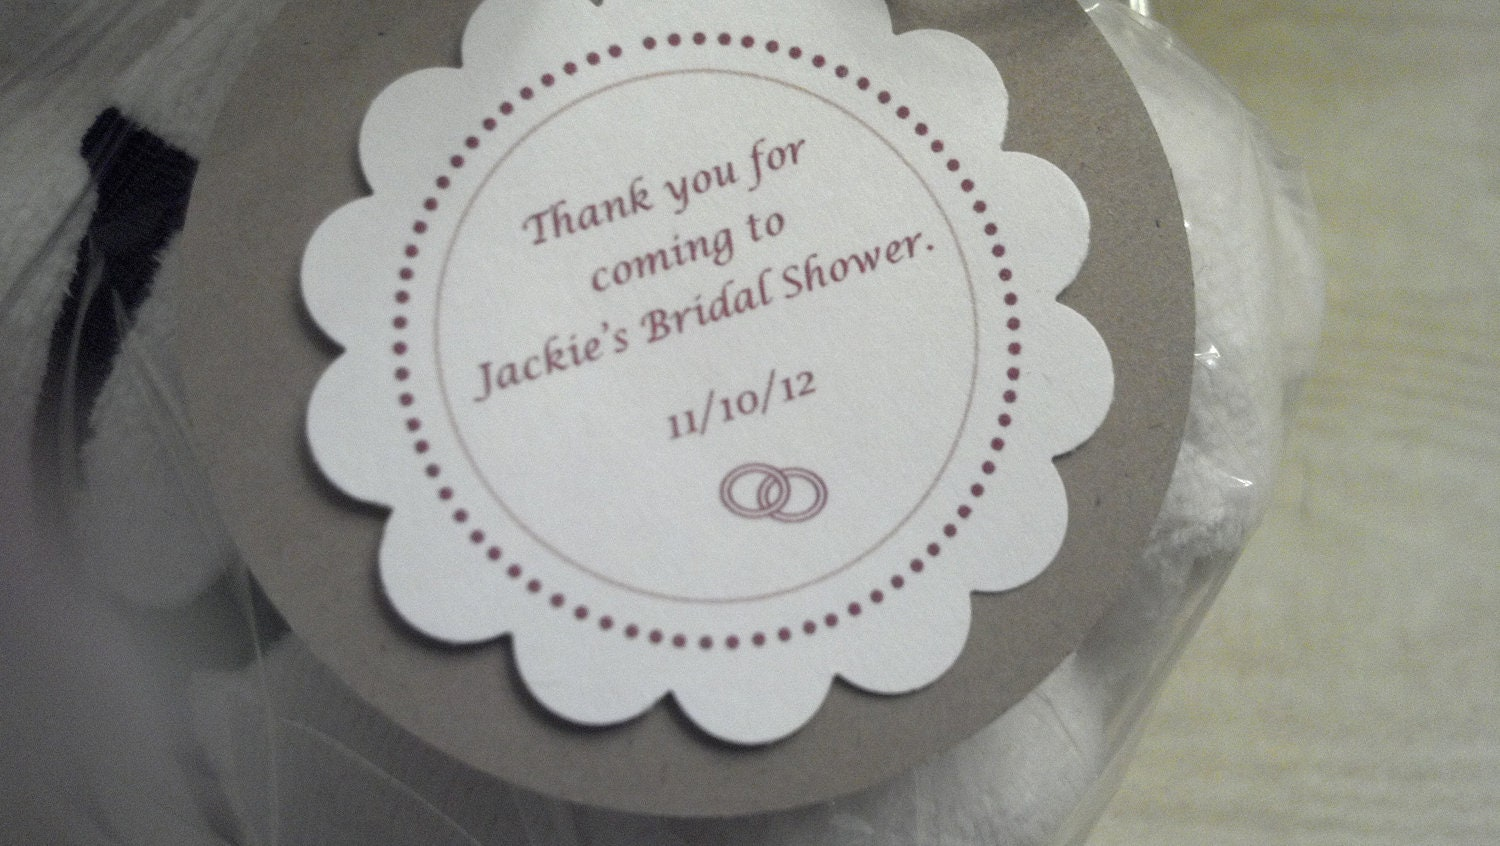 Bridal Shower Favor Tags Sayings : Quotes For Wedding Shower Favors. QuotesGram